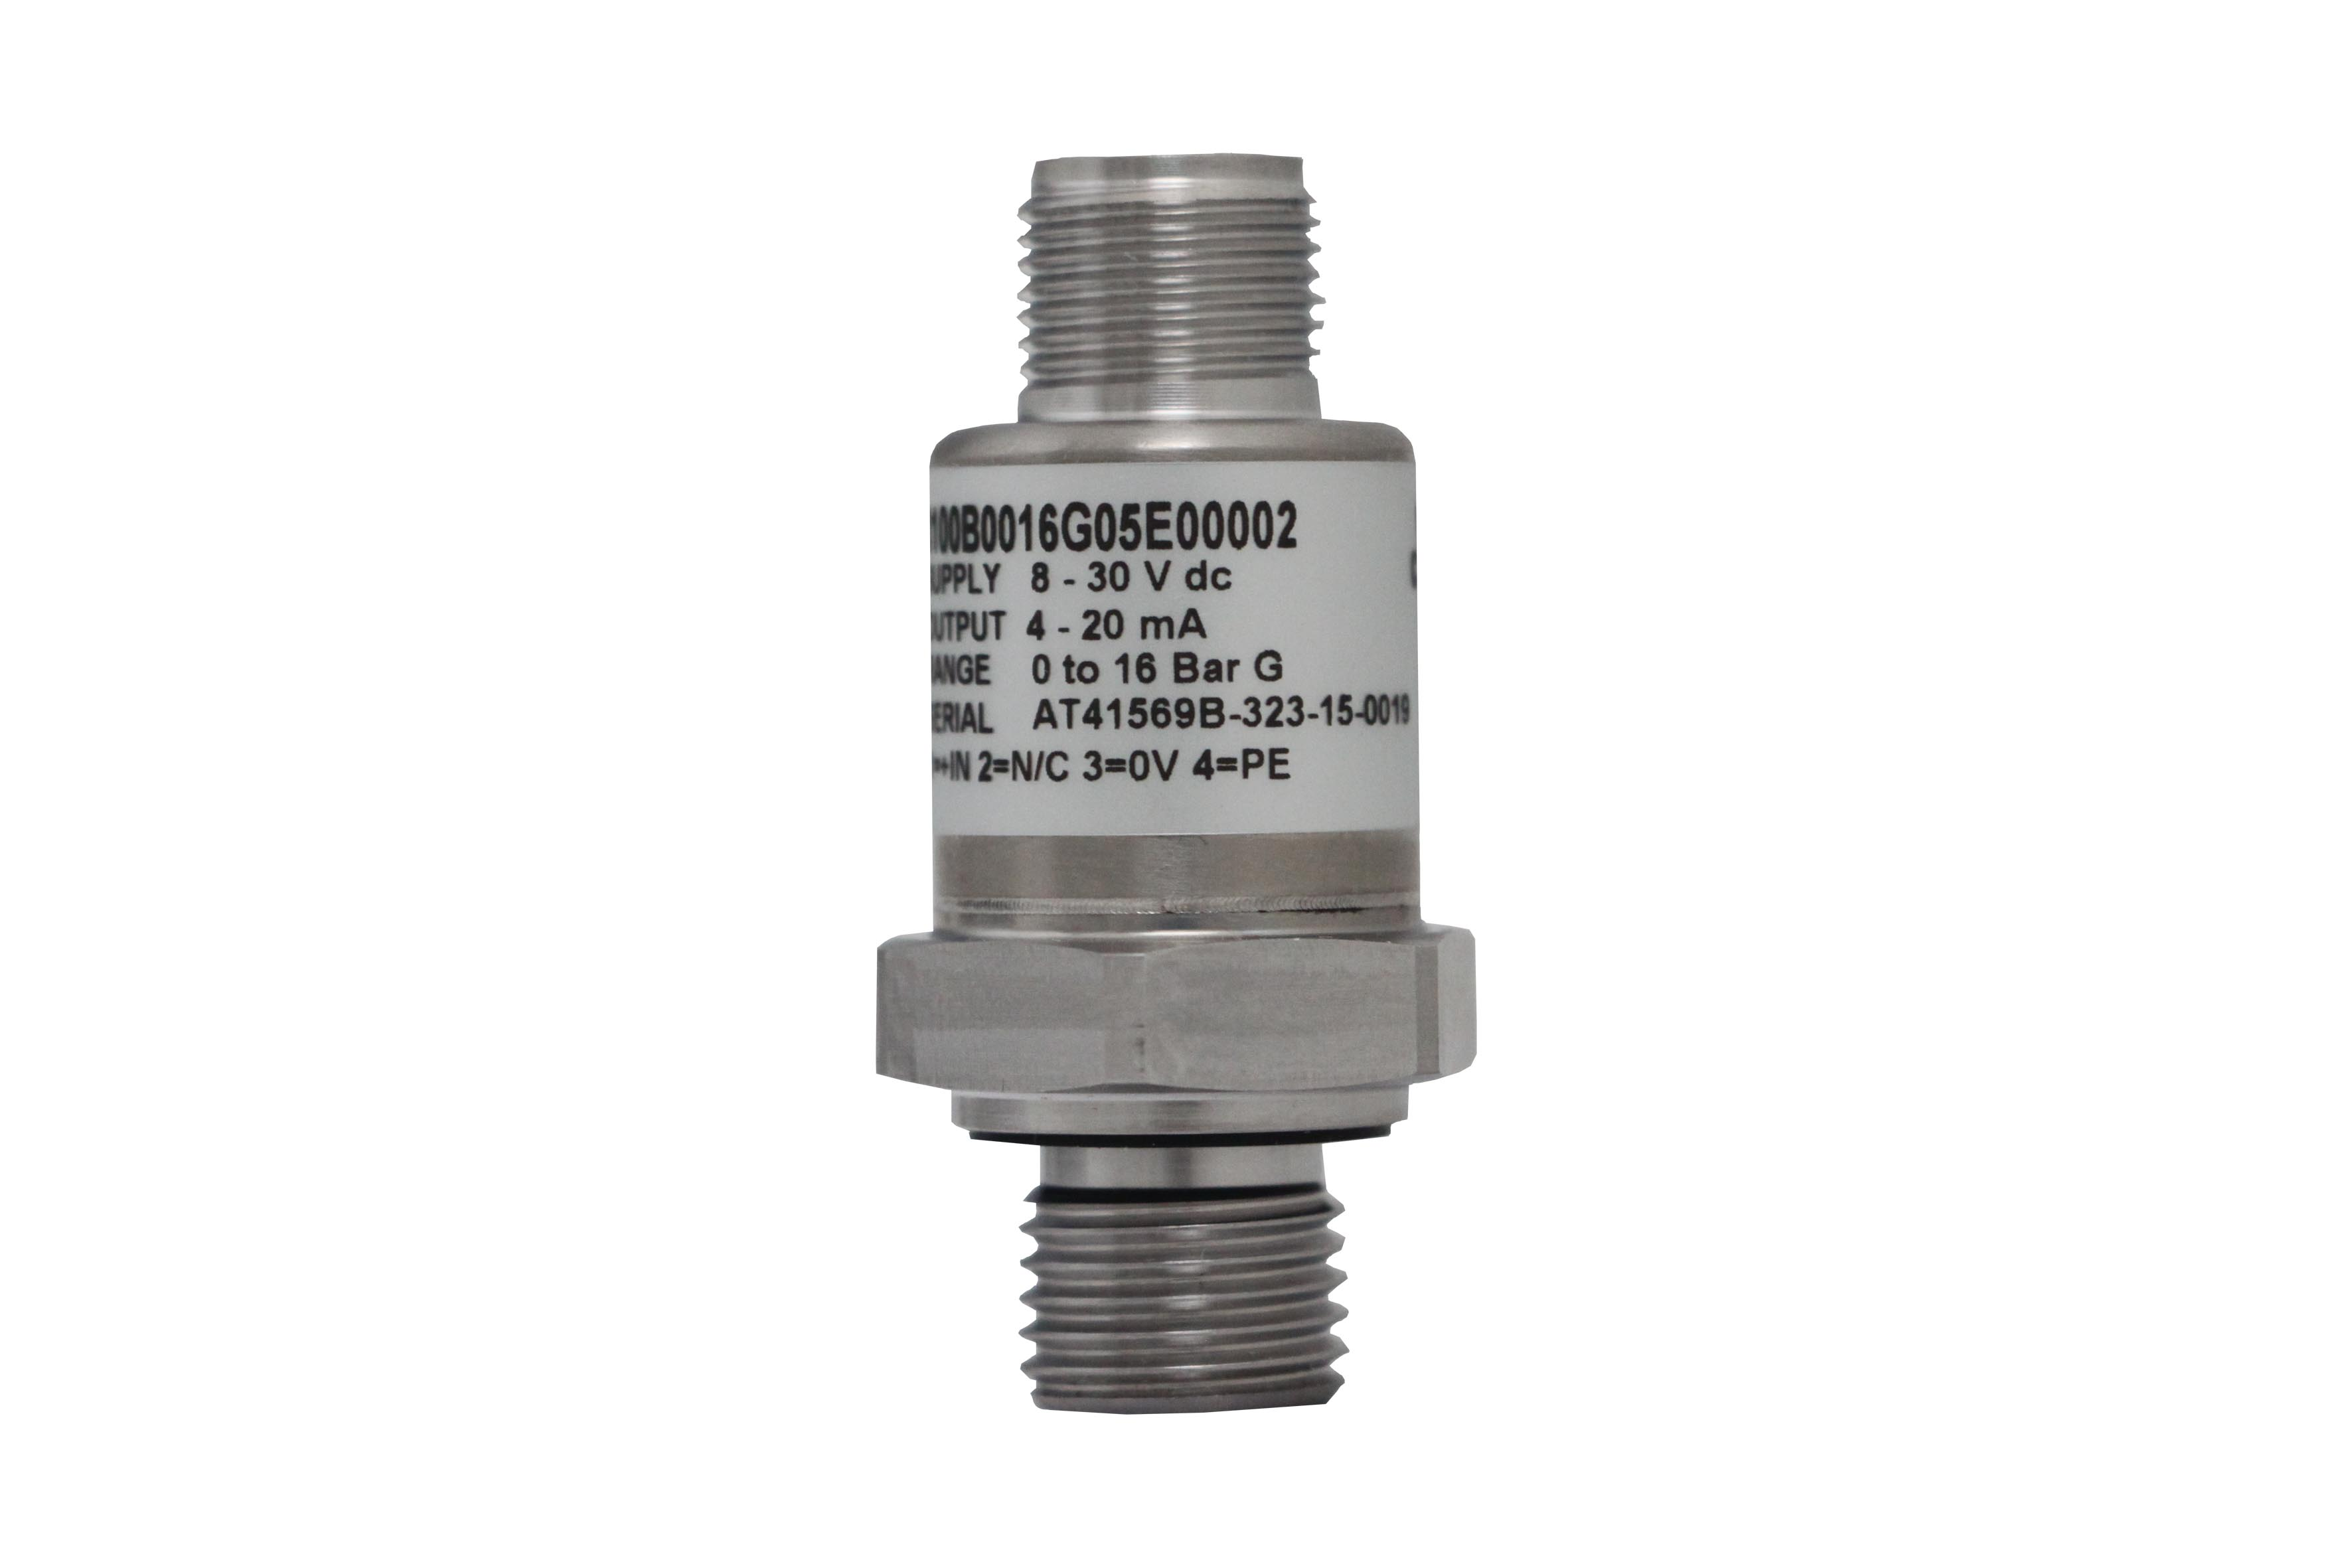 PRESSURE TRANSMITTER 4-20mA page image